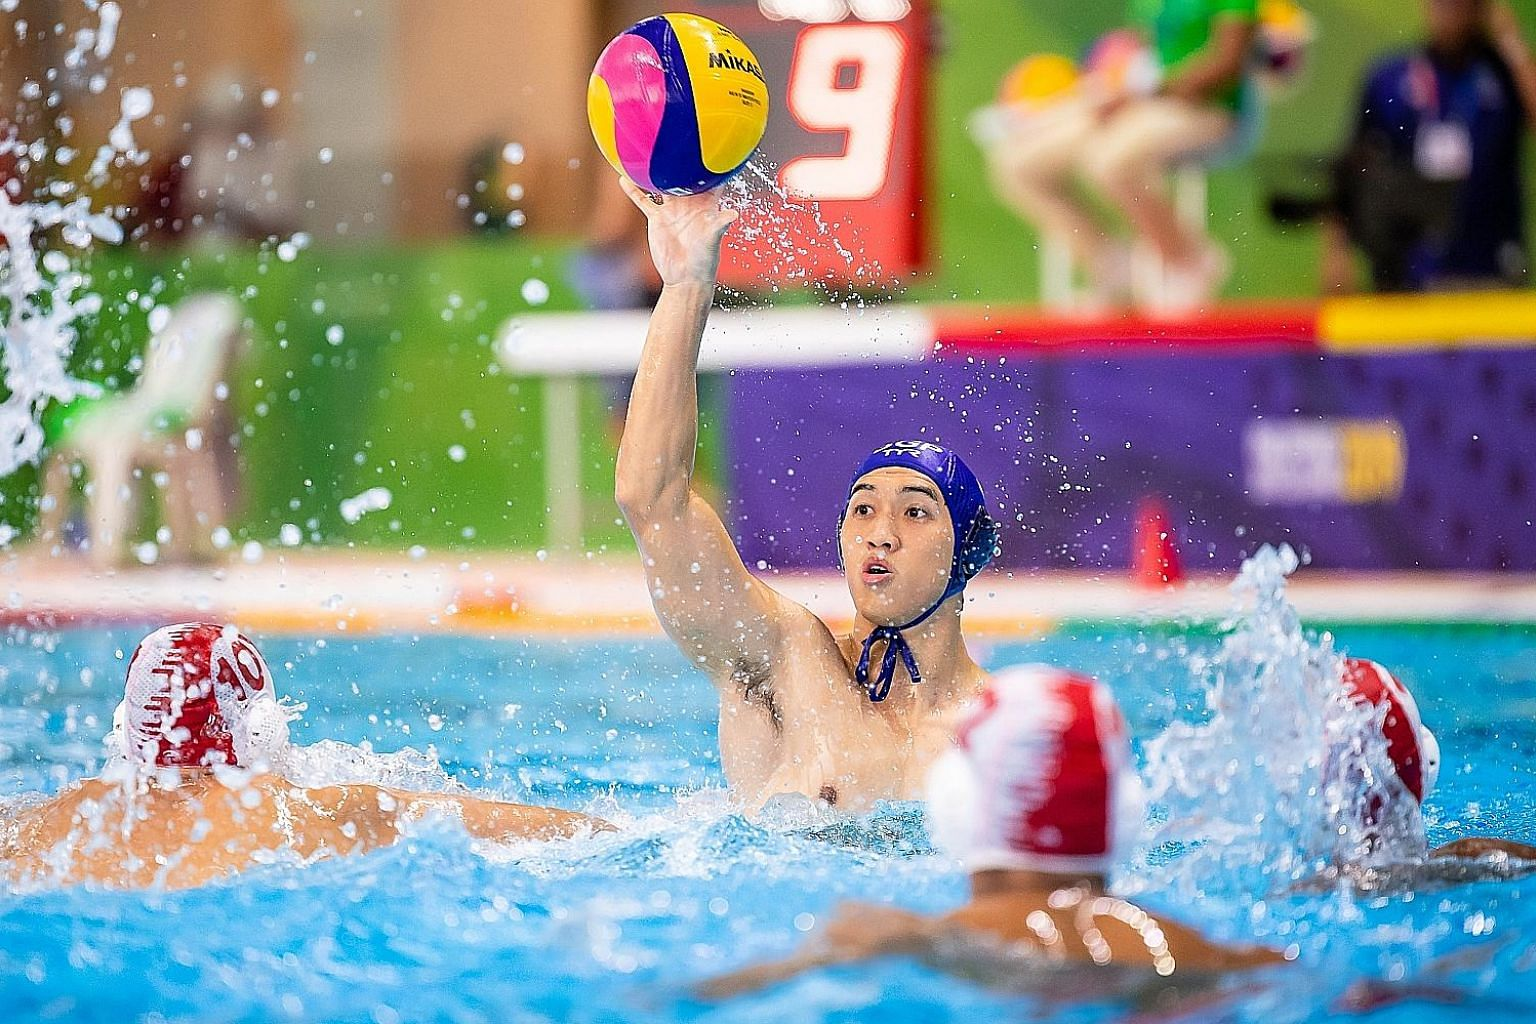 National water polo player Ang An Jun at the SEA Games men's water polo event at the New Clark City Aquatics Centre, Philippines, yesterday.